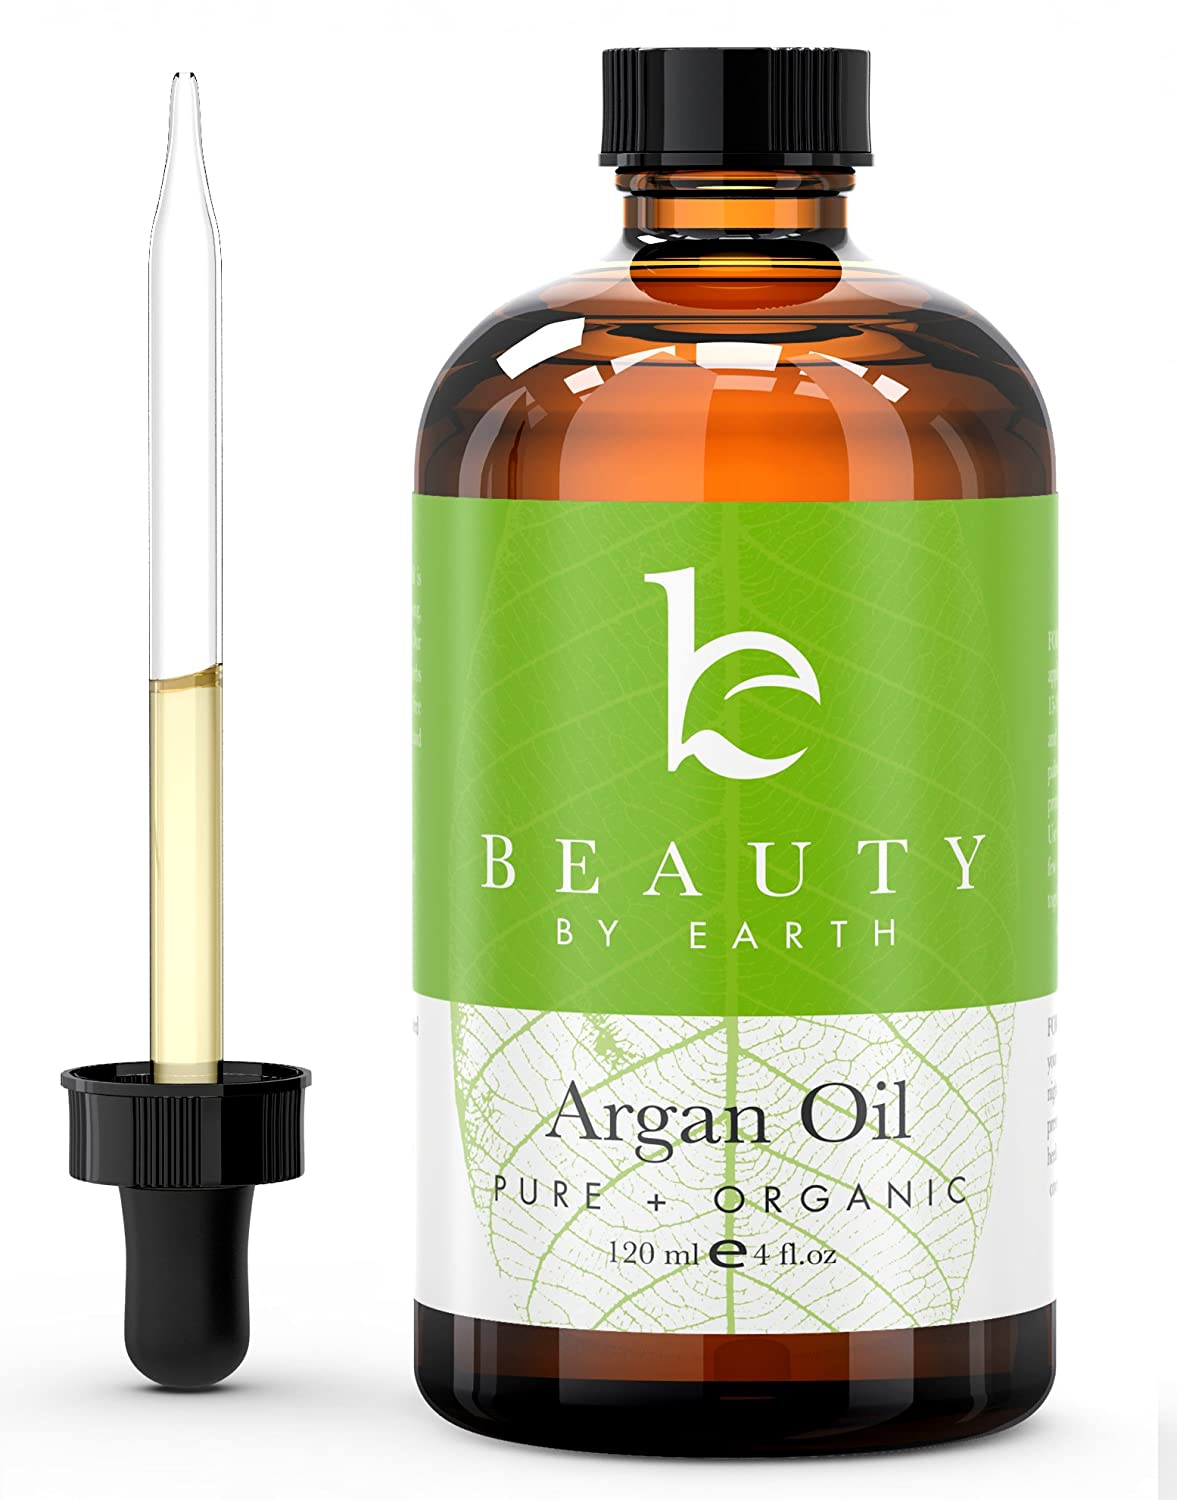 Argan Oil - USDA Organic Moroccan Oil, Virgin, Cold Pressed and Best for Hair, Skin, Nails Moisturizing and Treatment of Frizz, Early Aging and Wrinkles